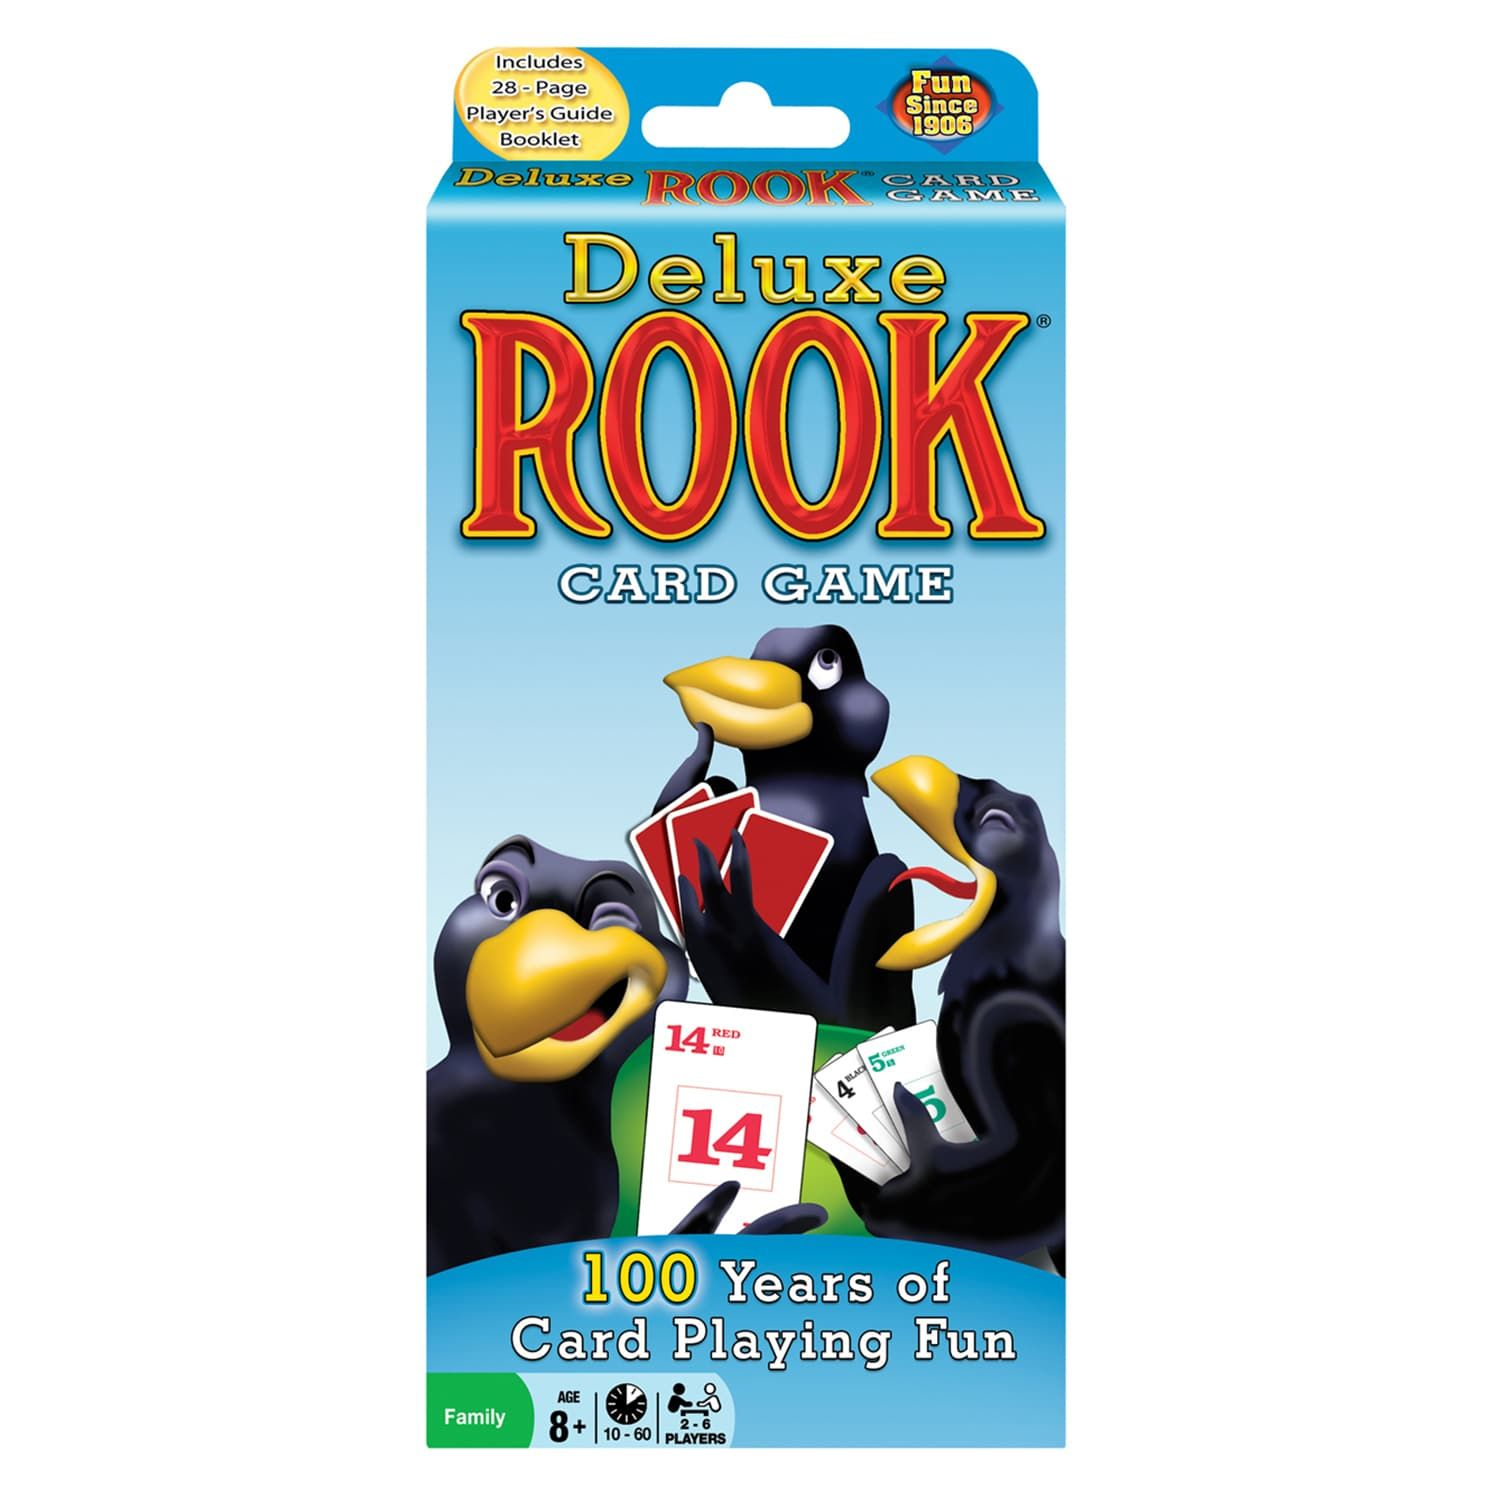 Deluxe Rook Card Game by Winning Moves Rook card game